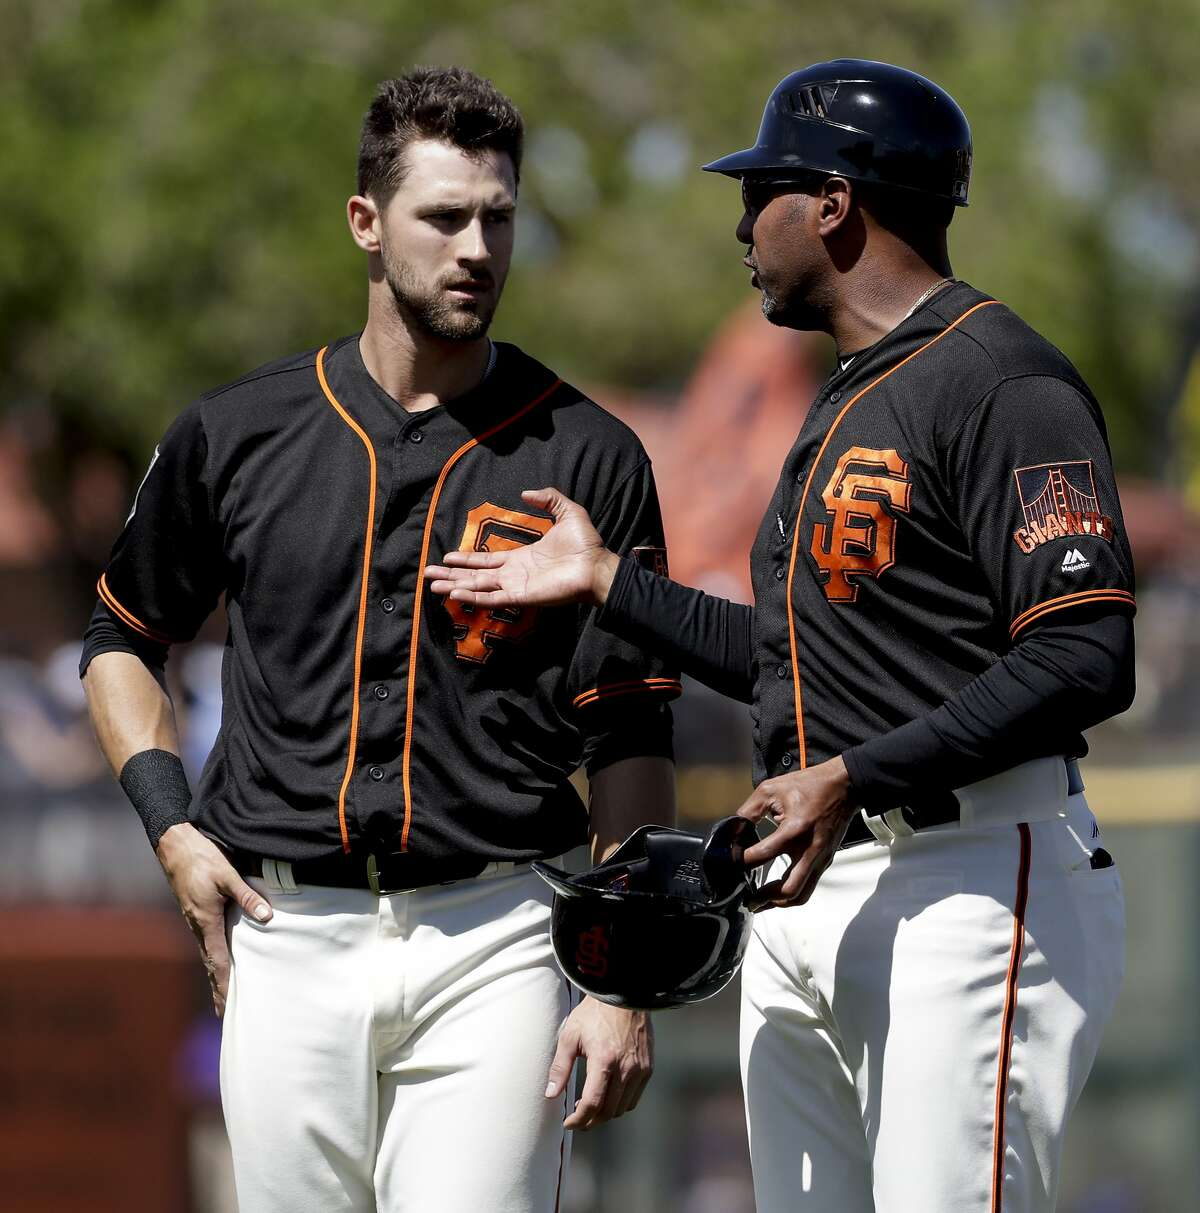 San Francisco Giants first base coach Jose Alguacil, right, talks to Steven Duggar during the first inning of the team's spring training baseball game against the Kansas City Royals in Scottsdale, Ariz., Friday, March 23, 2018. (AP Photo/Chris Carlson)